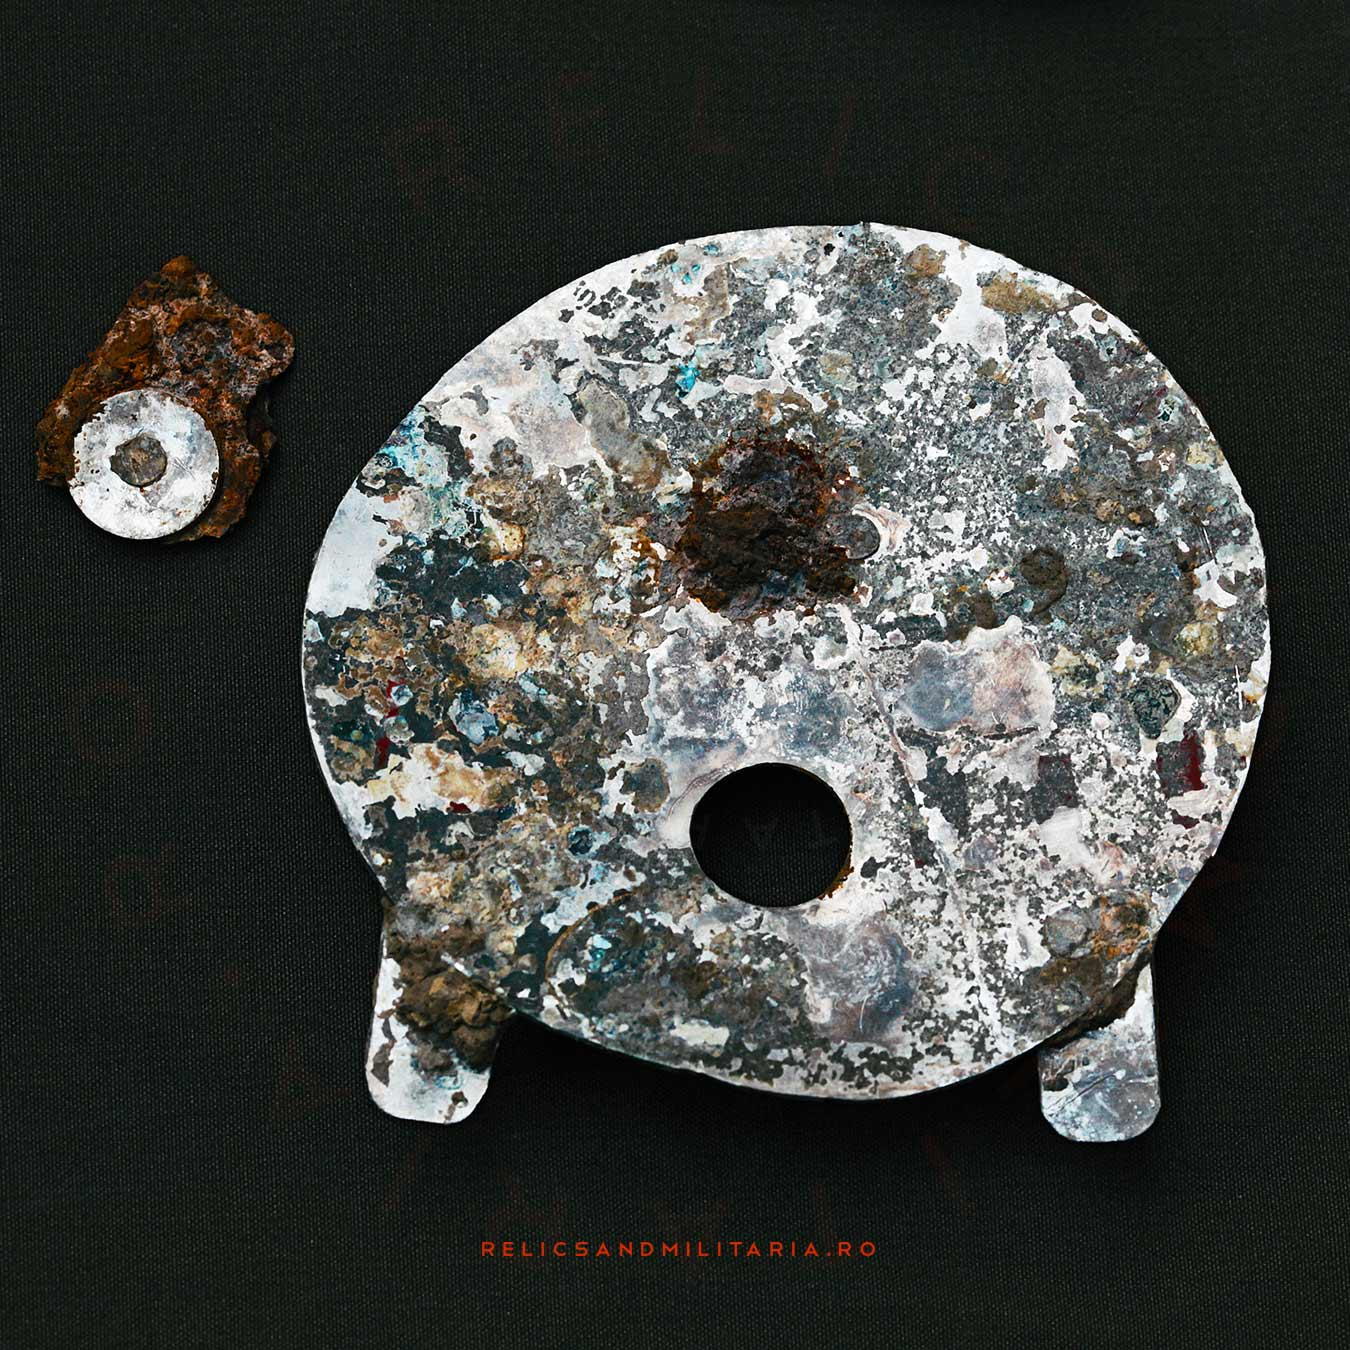 Ilyushin Il-2 Shturmovik relics parts found in Romania while metal detecting